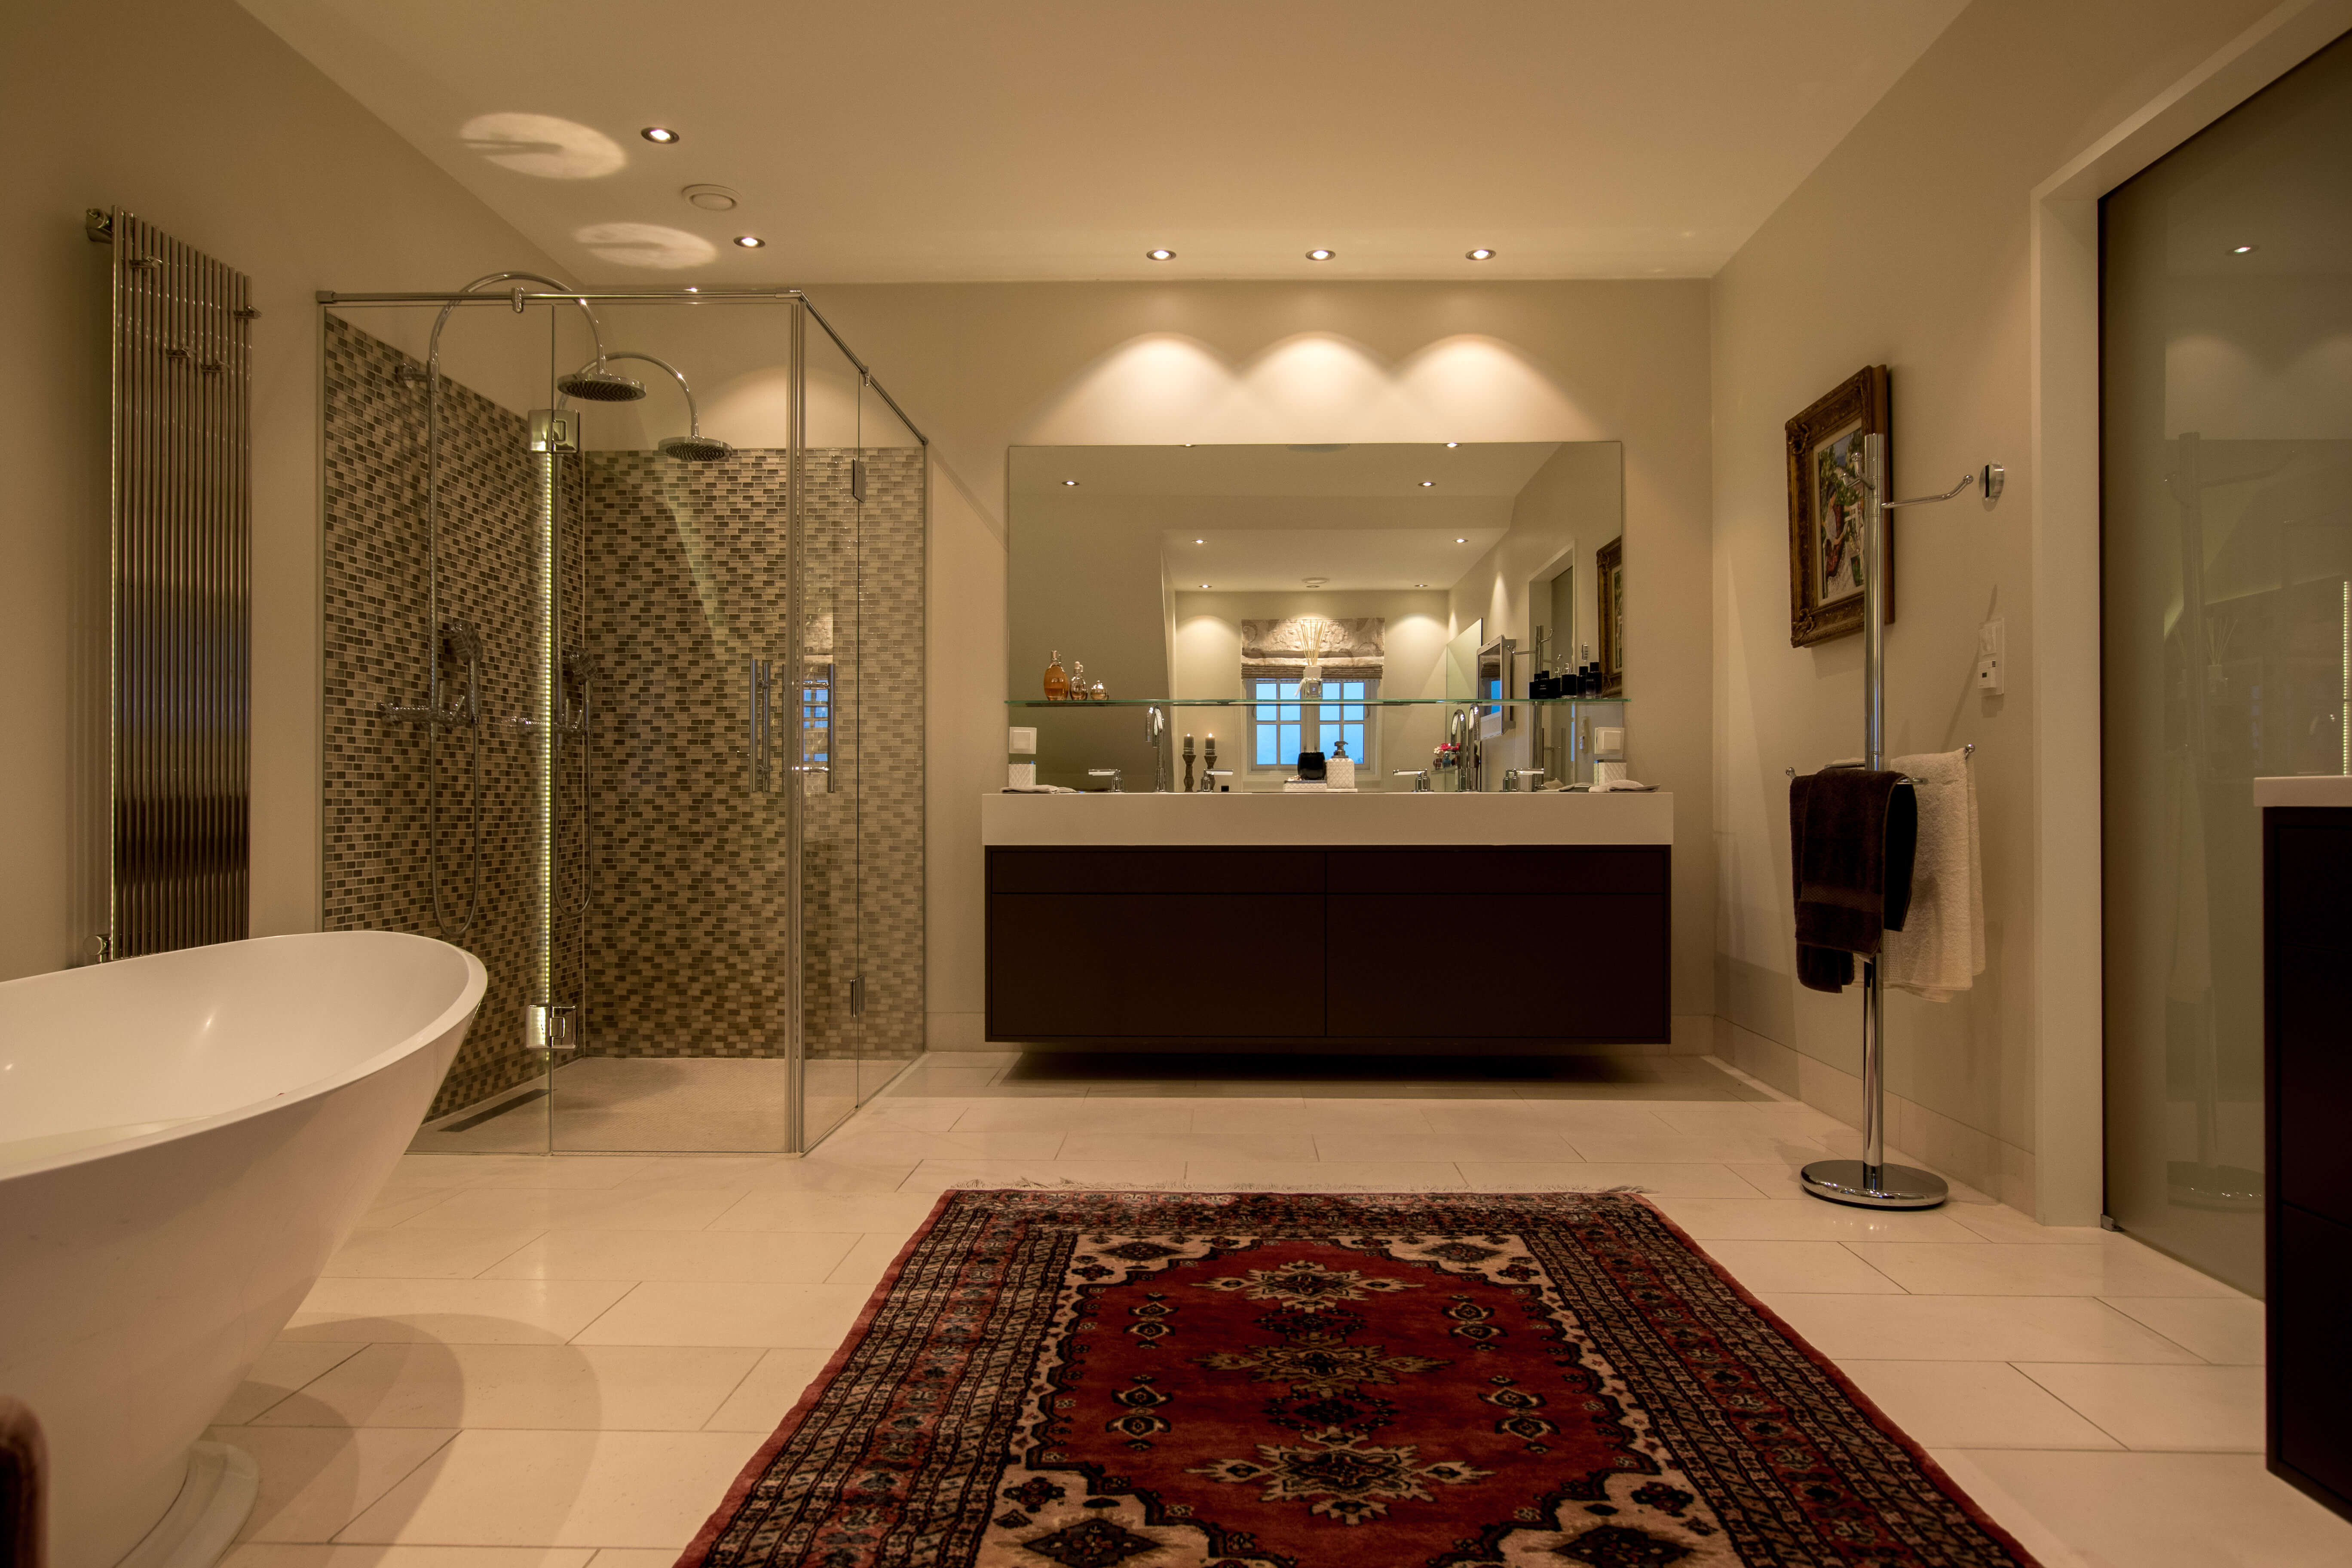 Main bathroom overview.